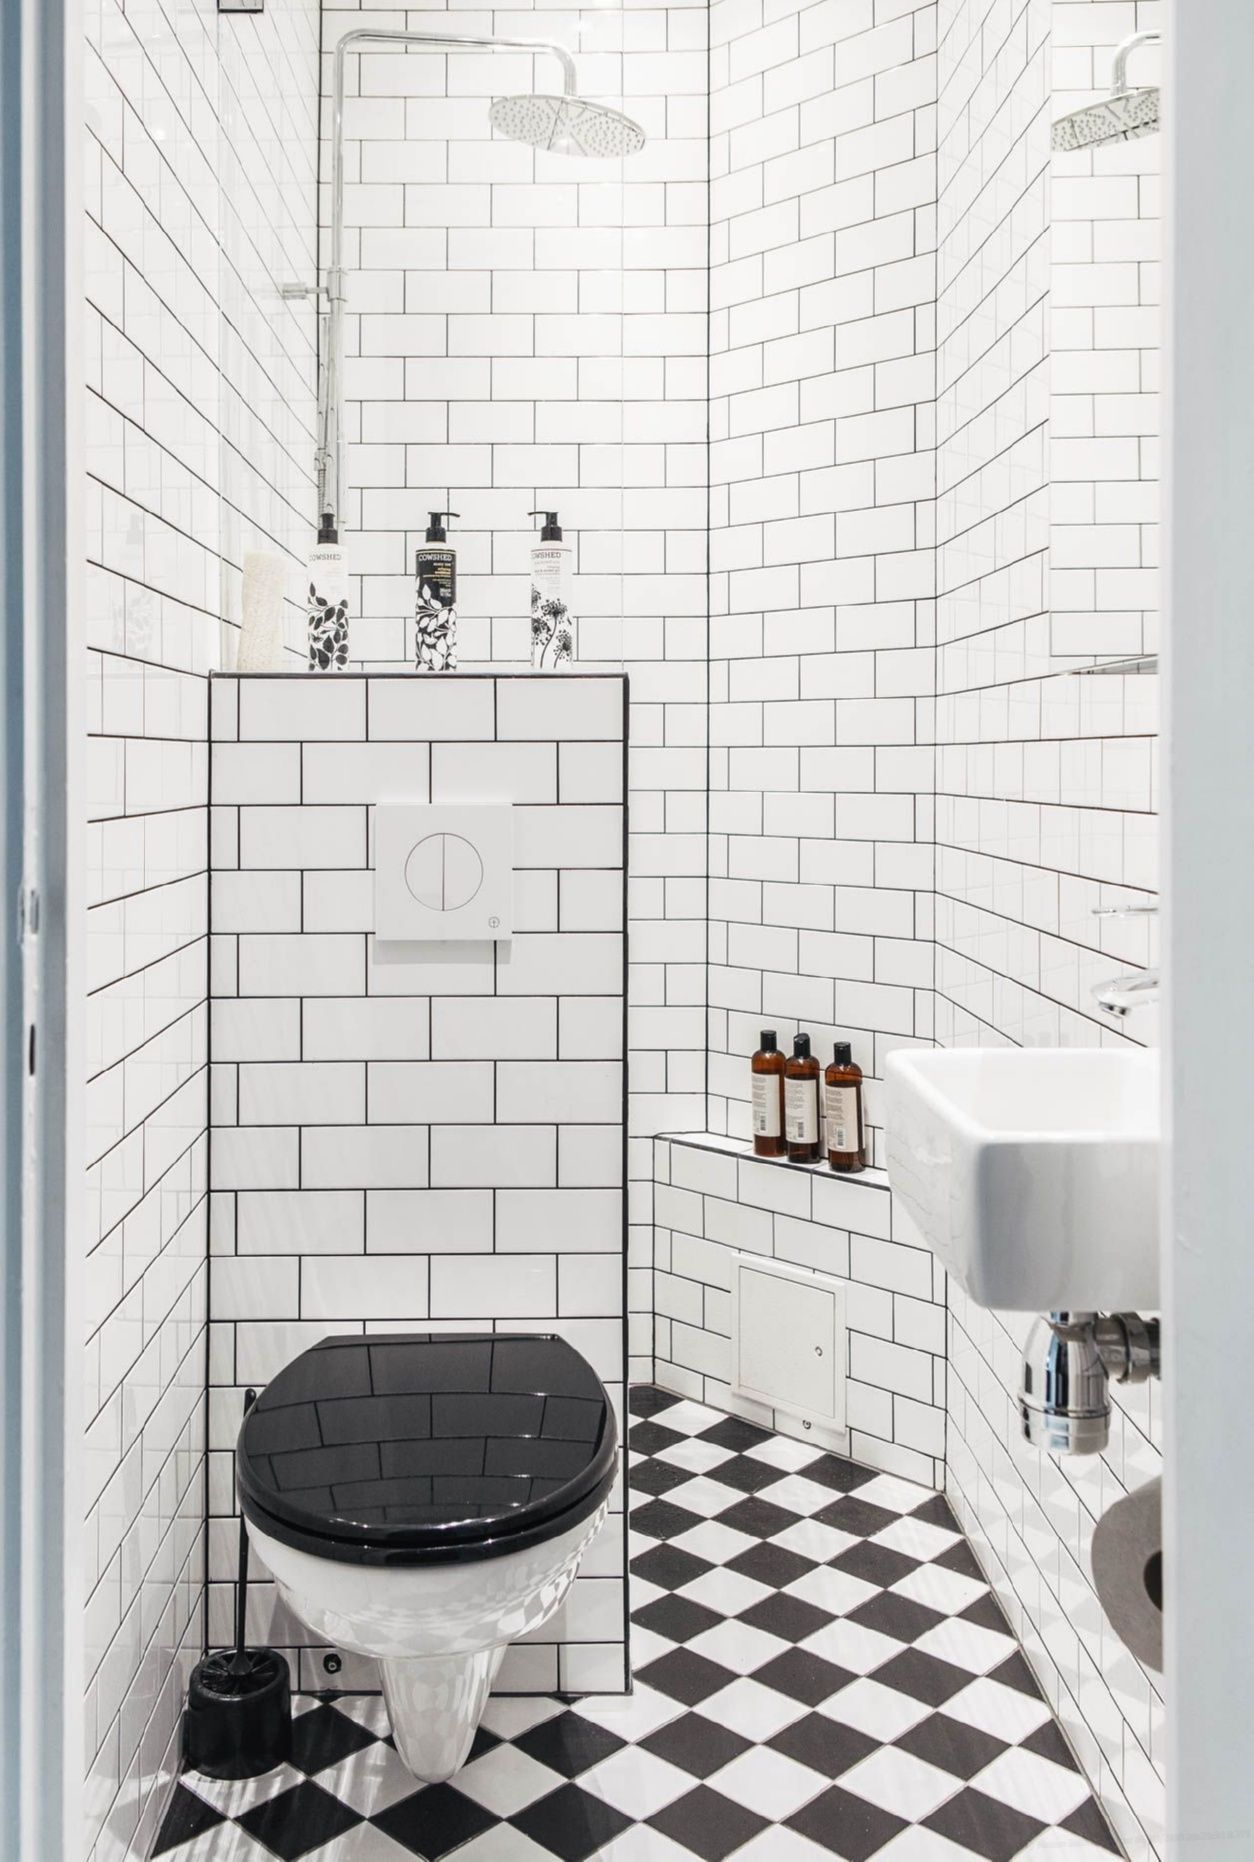 Tiny House Layout Tiny Homes Have To Make Efficient Use Of Space And That Includes The Bathrooms A Tiny Small Bathroom Decor Tiny Bathrooms Small Bathroom